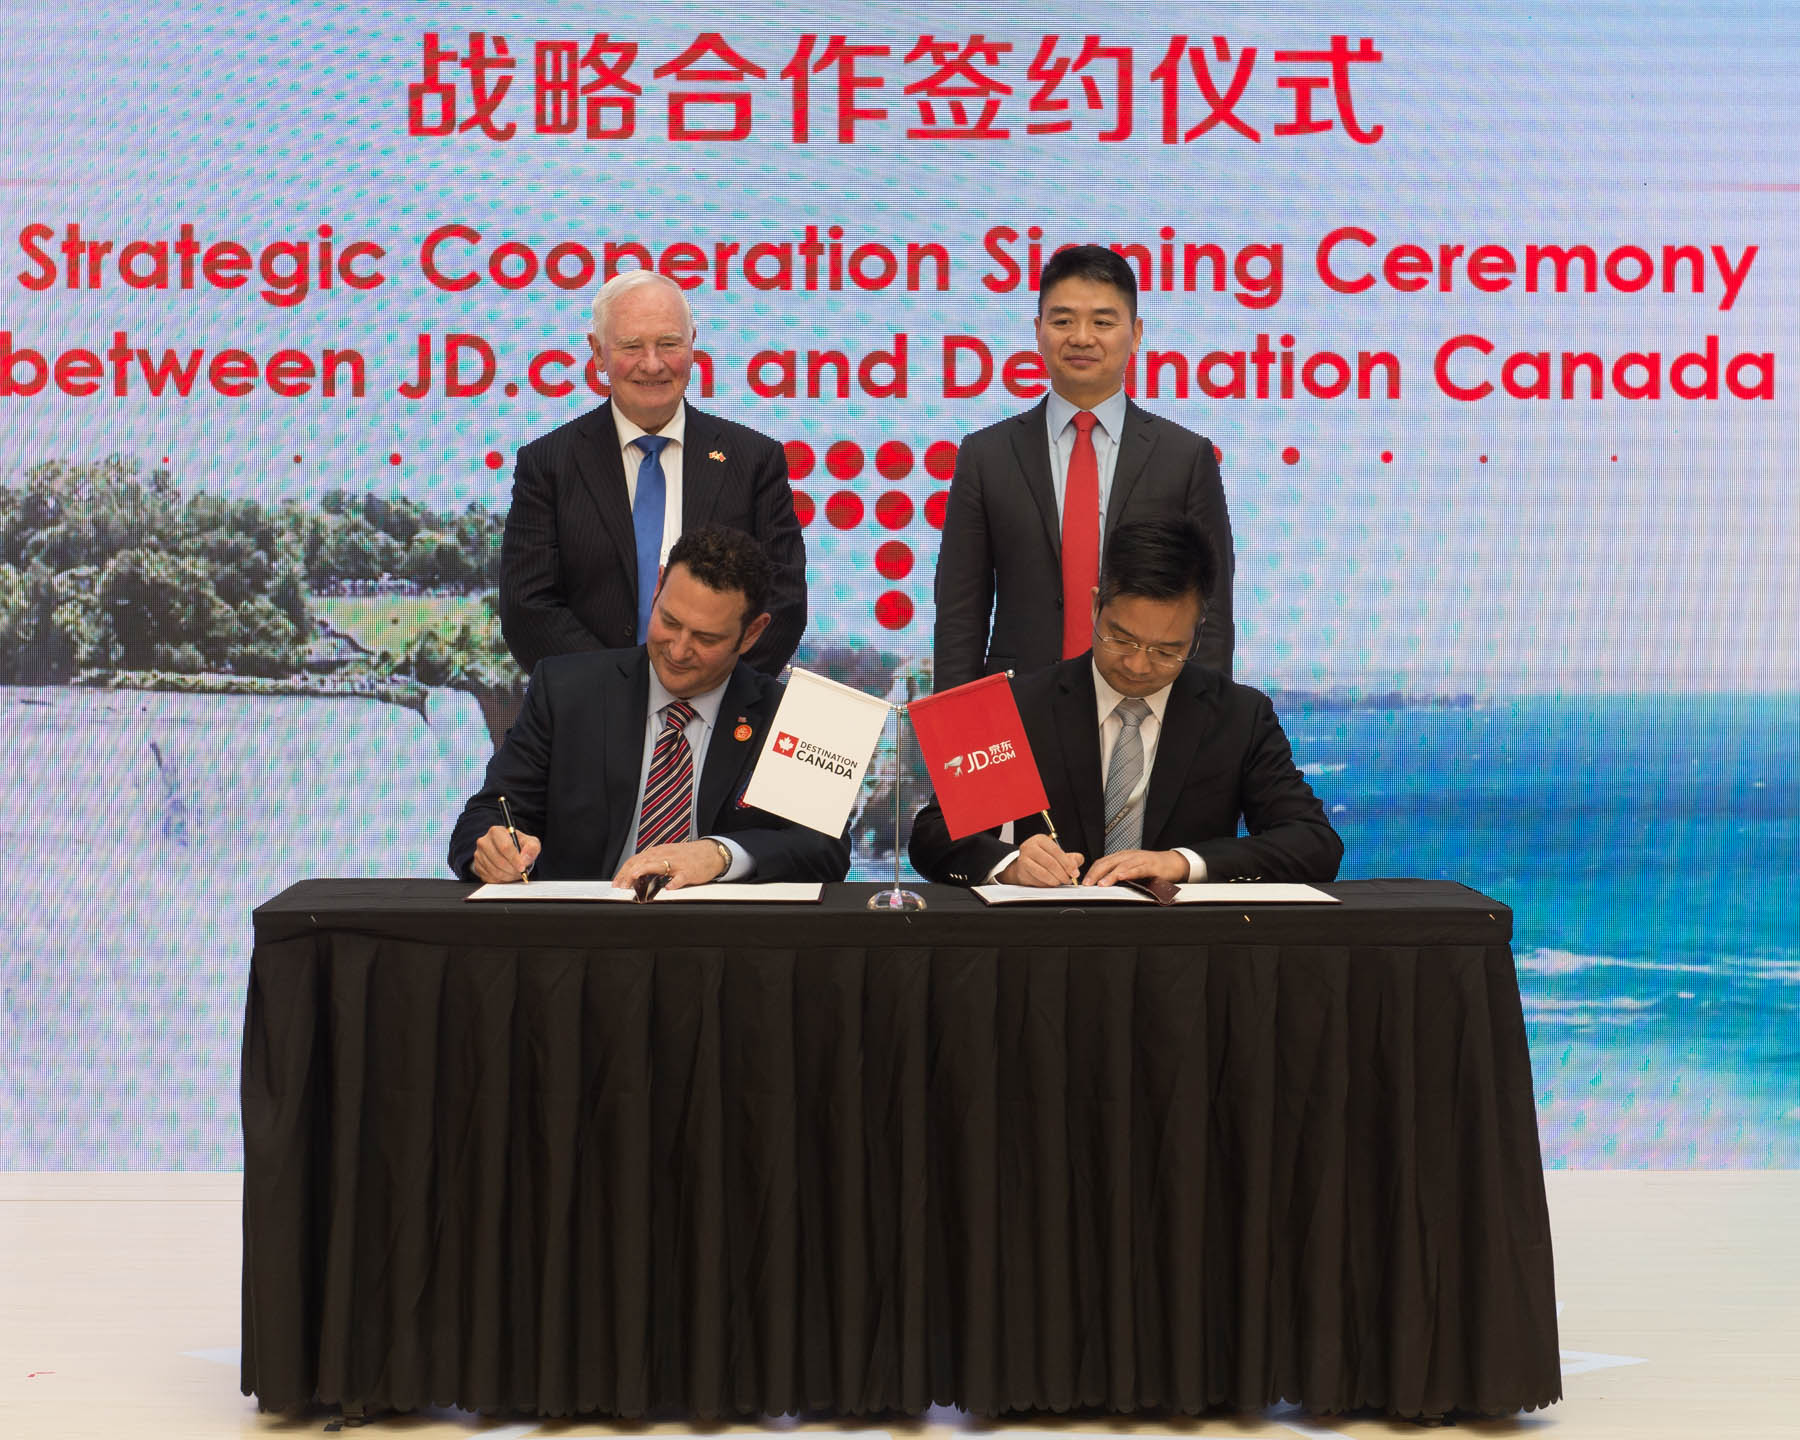 Afterwards, His Excellency witnessed the signing of a co-operation agreement between Destination Canada and JD.com. This agreement, which further promotes Canadian food products and showcases Canada as a tourist destination, was signed by Canadian delegate David F. Goldstein, President and Chief Executive Officer of Destination Canada.